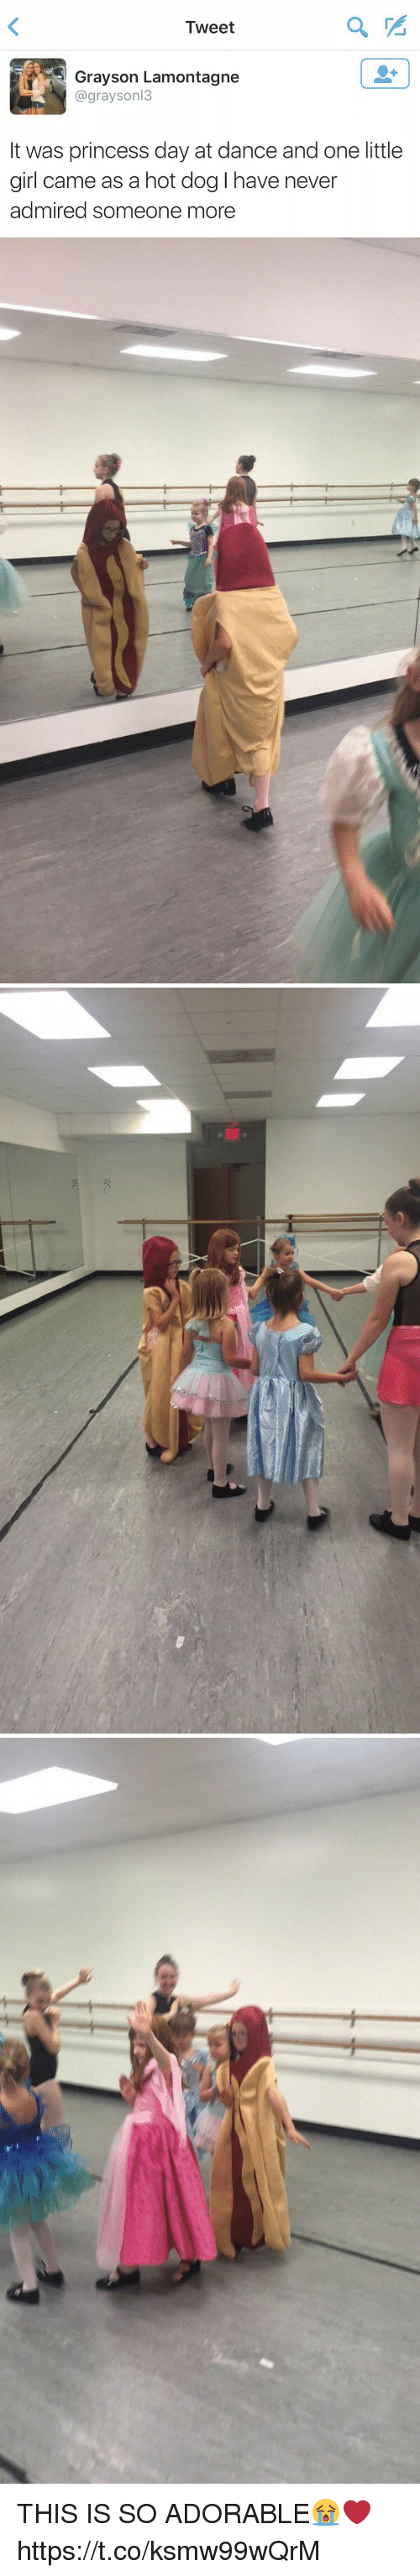 Girl, Princess, and Girl Memes: Tweet  Grayson Lamontagne  @grayson  It was princess day at dance and one little  girl came as a hot dog have never  admired someone more   ac THIS IS SO ADORABLE😭❤️ https://t.co/ksmw99wQrM